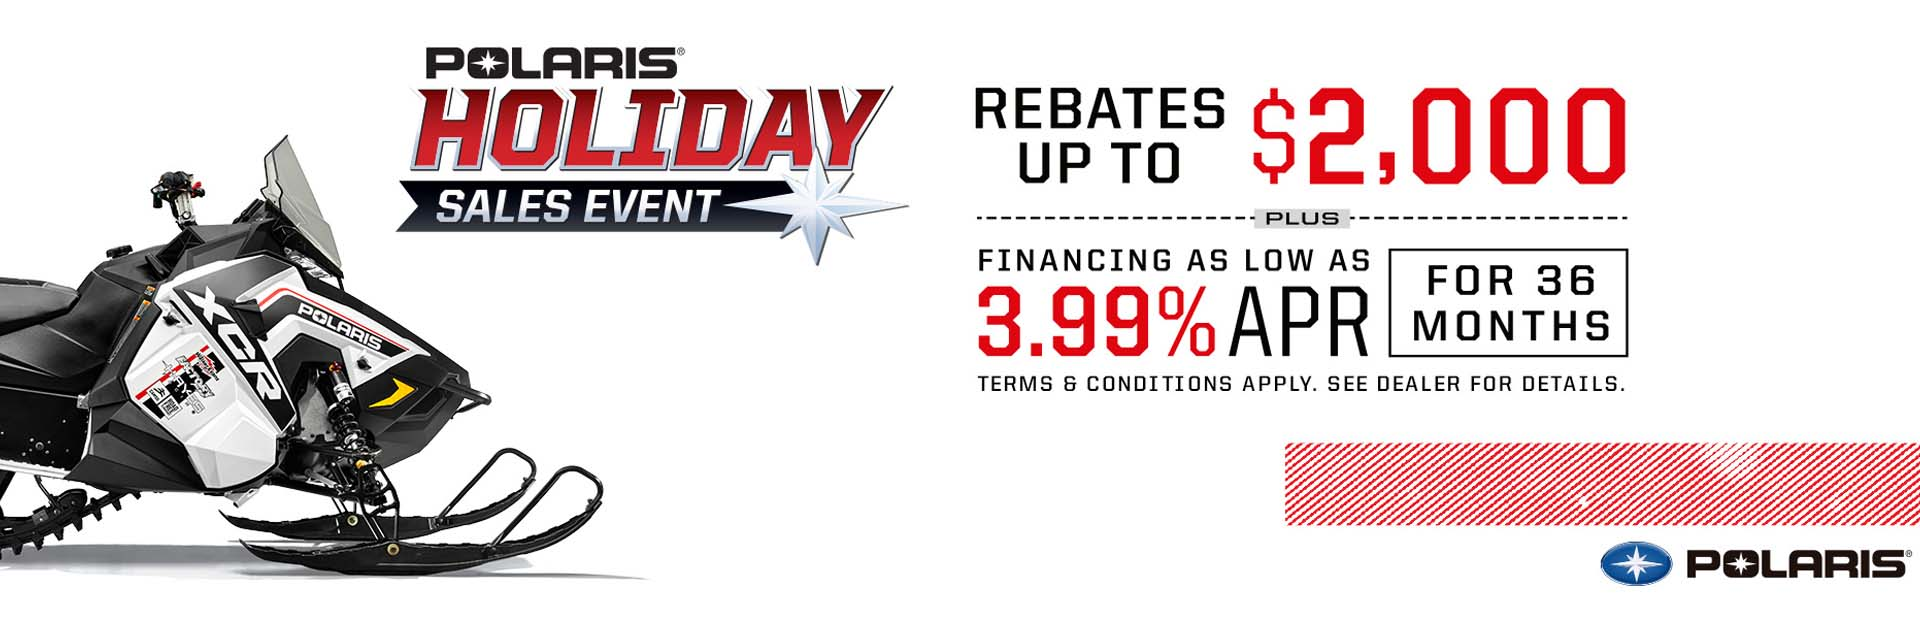 Polaris Holiday Sales Event with Rebates up to $2,000 plus Financing as low as 3.99% APR for 36 mont